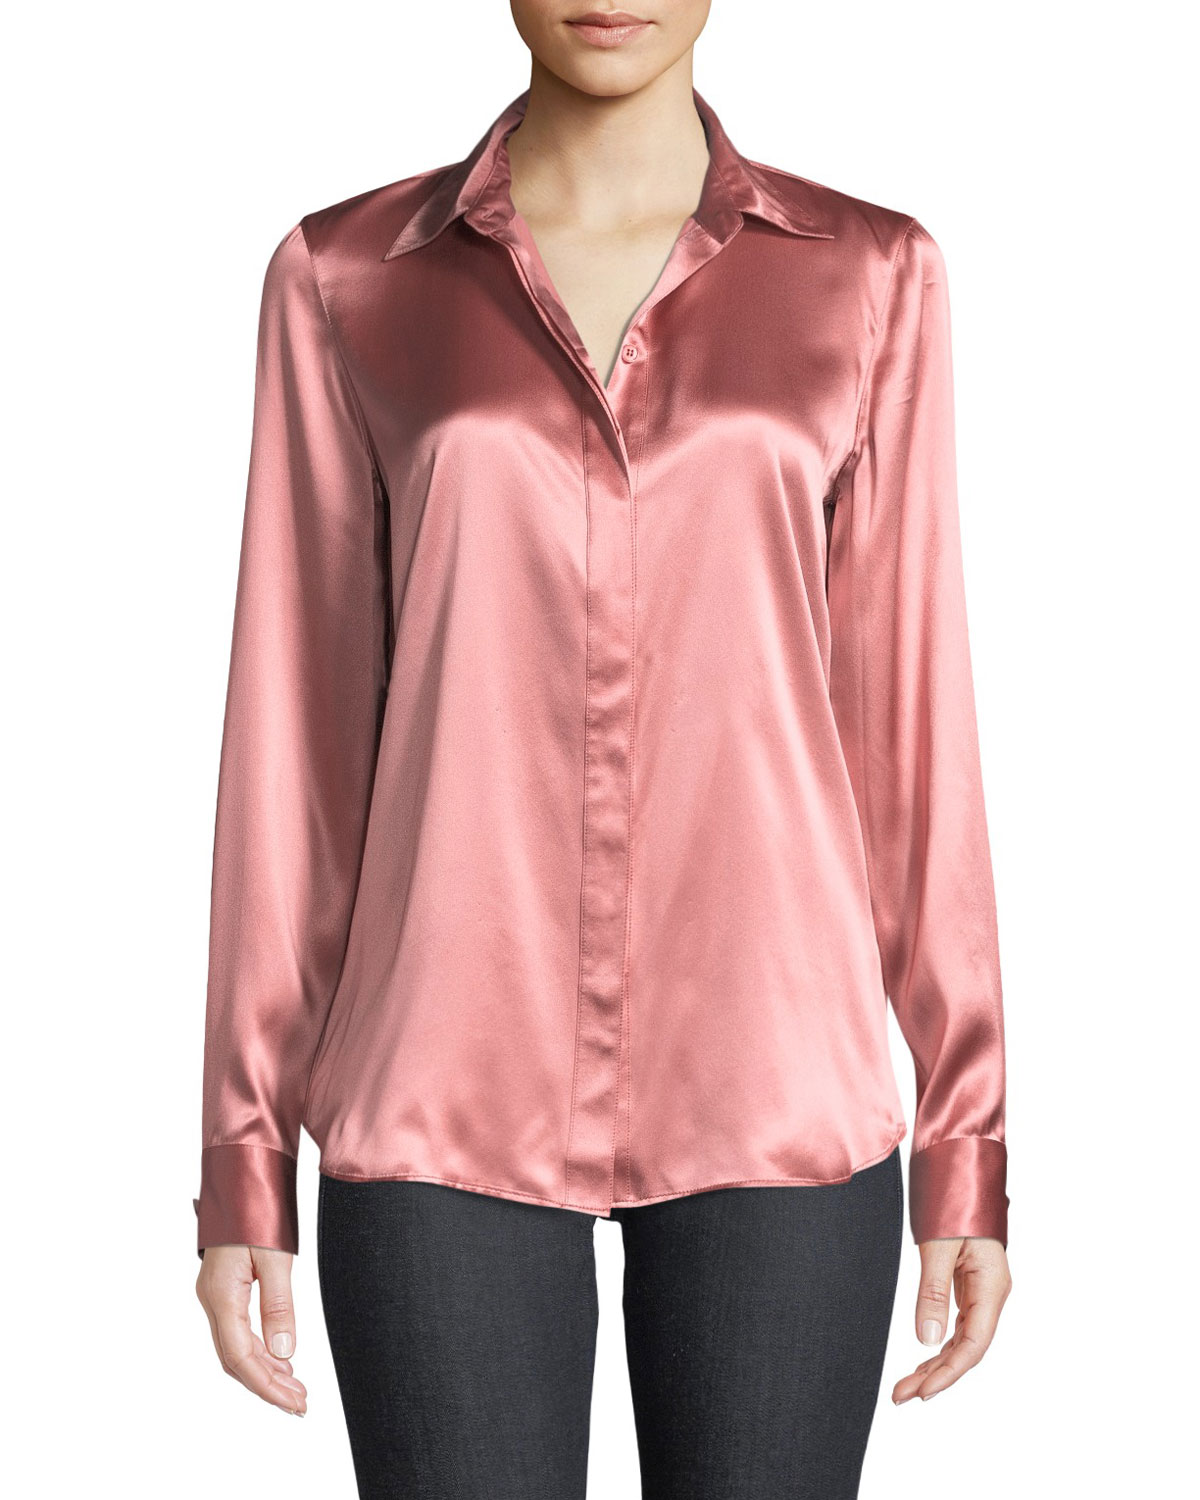 cef0326937bf20 Lafayette 148 New York Olga Luxe Silk Charmeuse Blouse Neiman Marcus